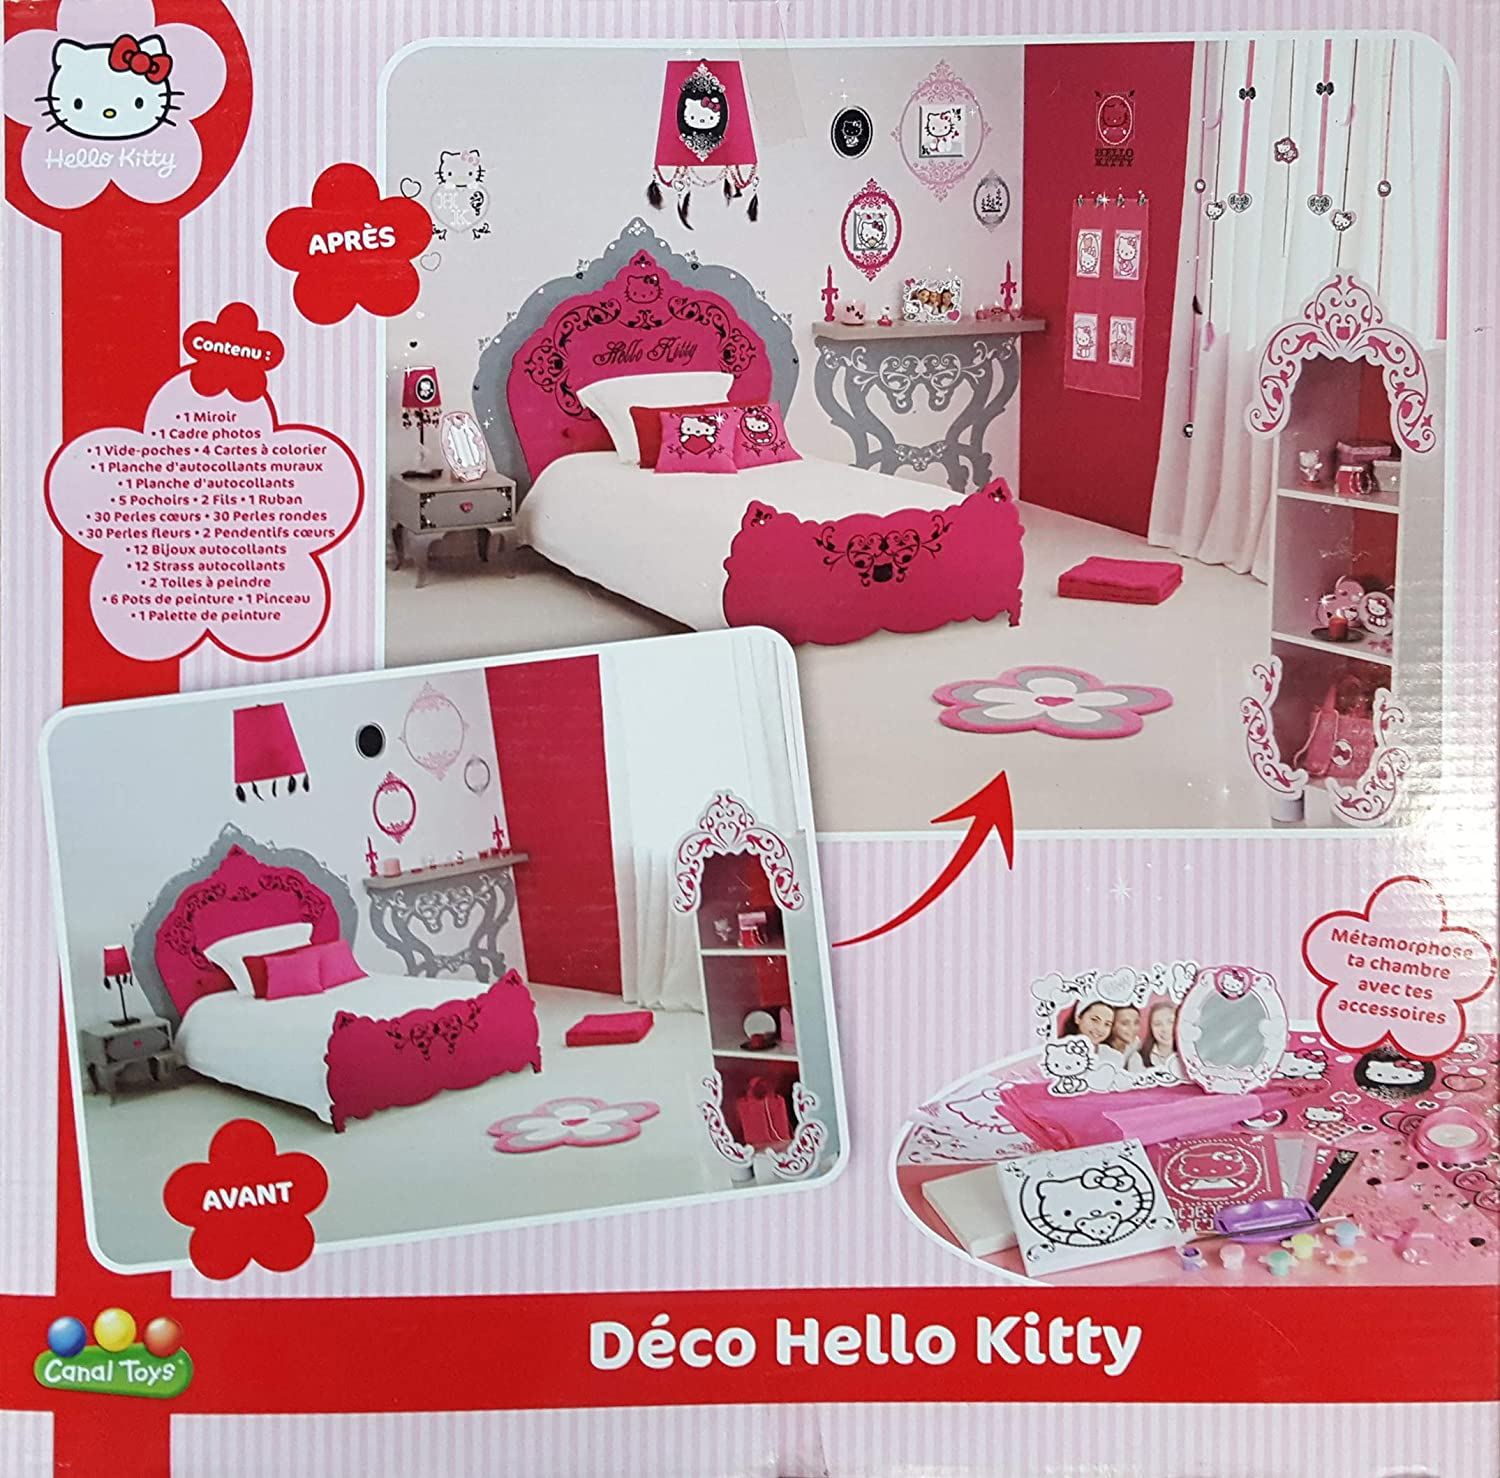 Hello Kitty Deco Kit: Amazon.es: Juguetes y juegos